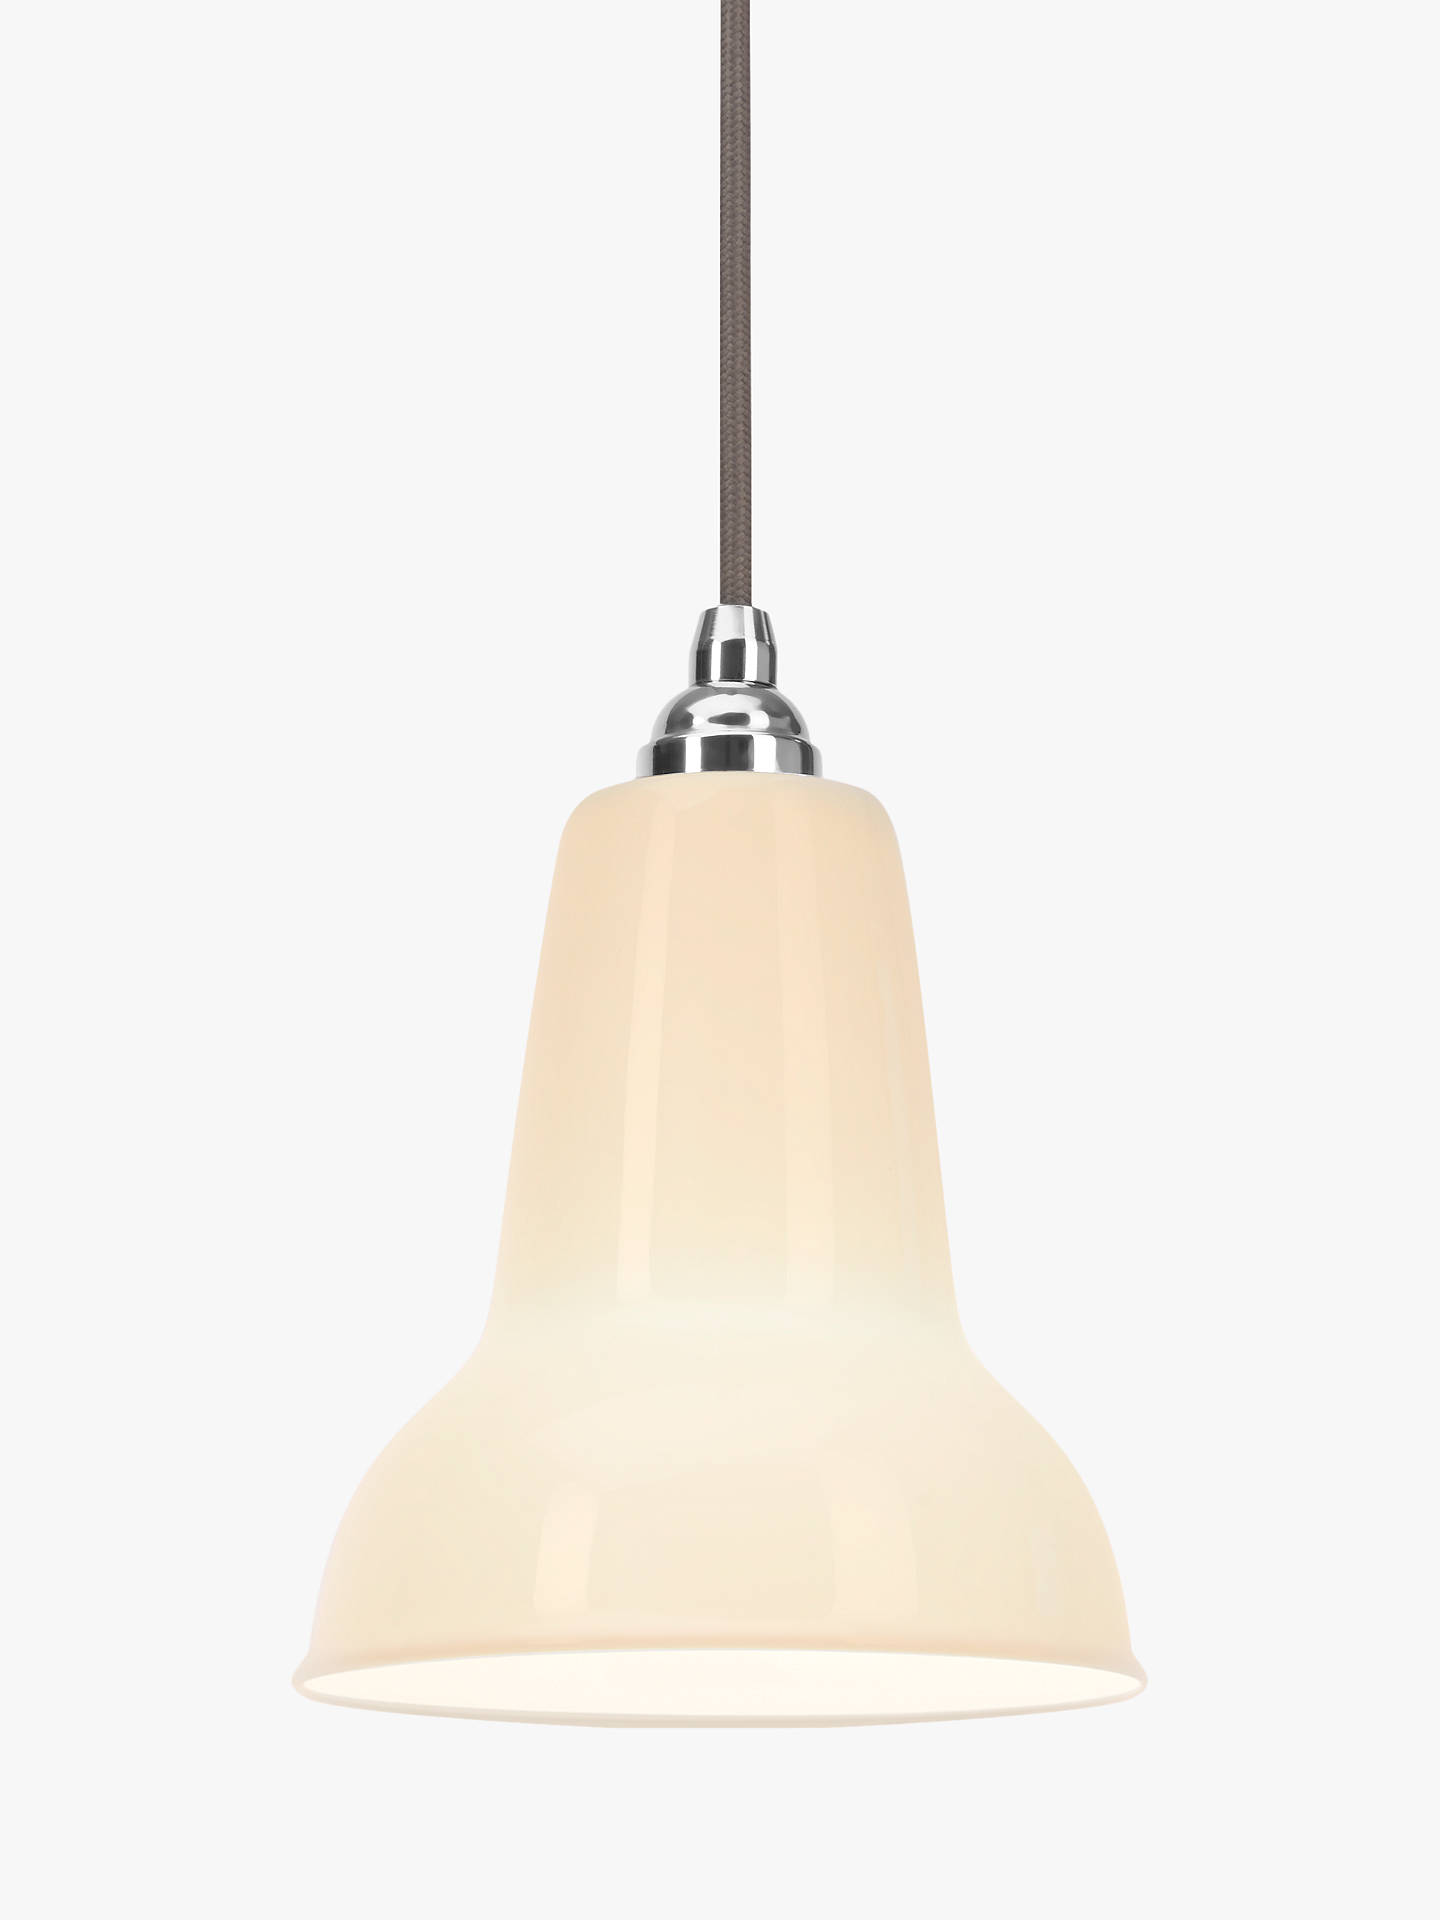 BuyAnglepoise 1227 Mini Ceramic Ceiling Light, White Online at johnlewis.com